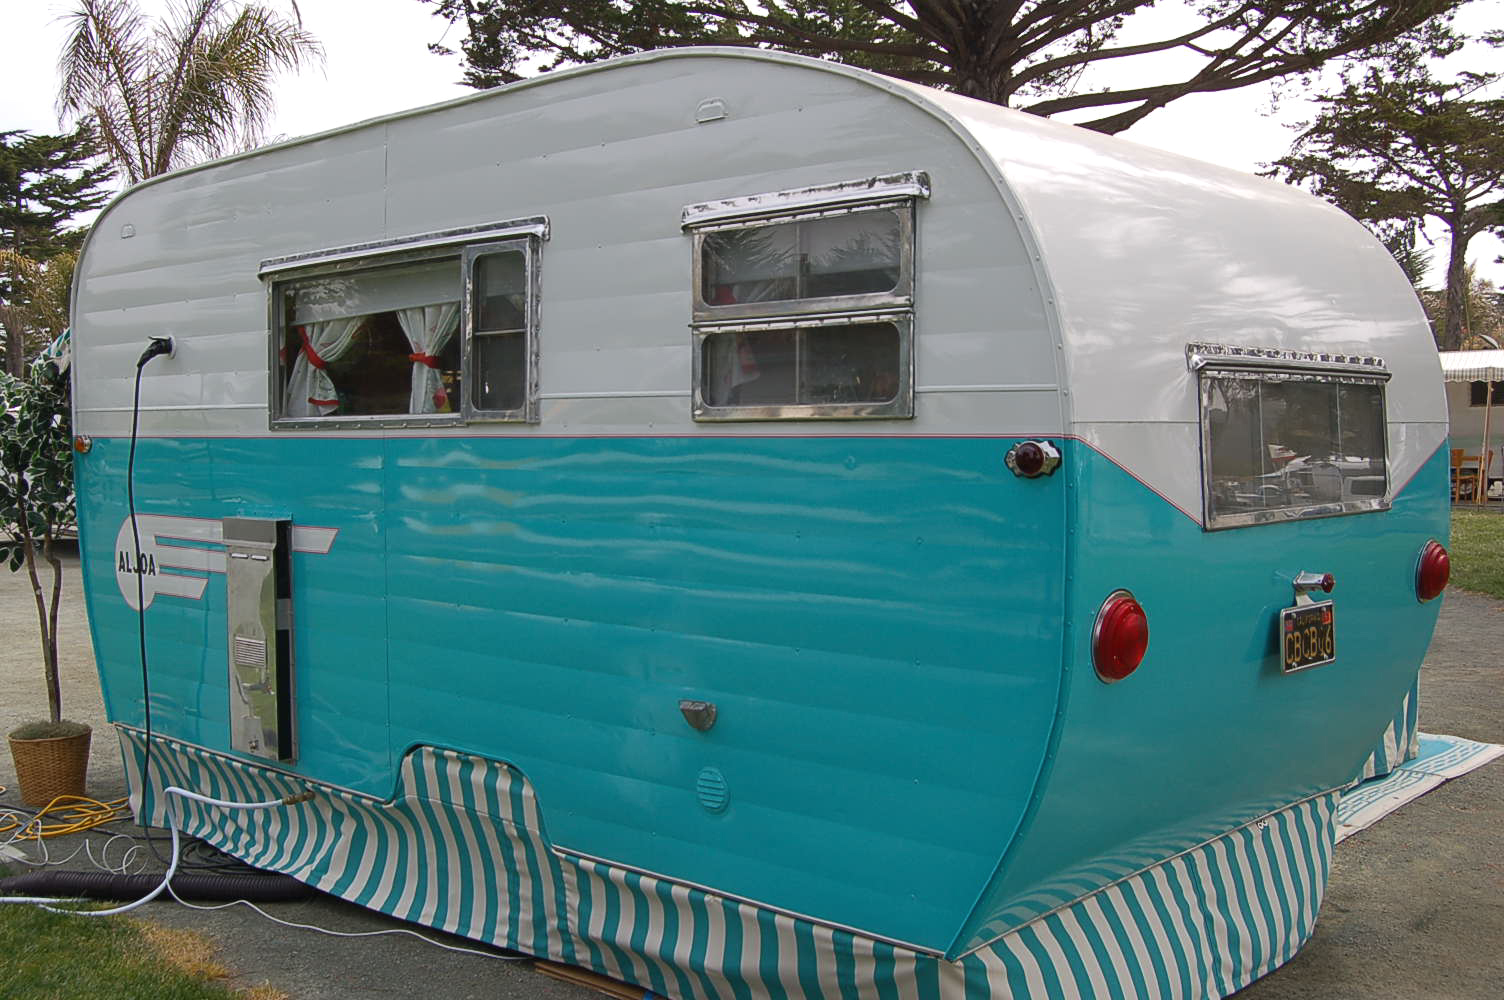 Preferential Paintscheme Vintage Aljoa Trailer S Turquoise From Canned Ham Camper Plans Canned Ham Camper Remodel Aljoa Canned Ham Trailer Painted curbed Canned Ham Camper